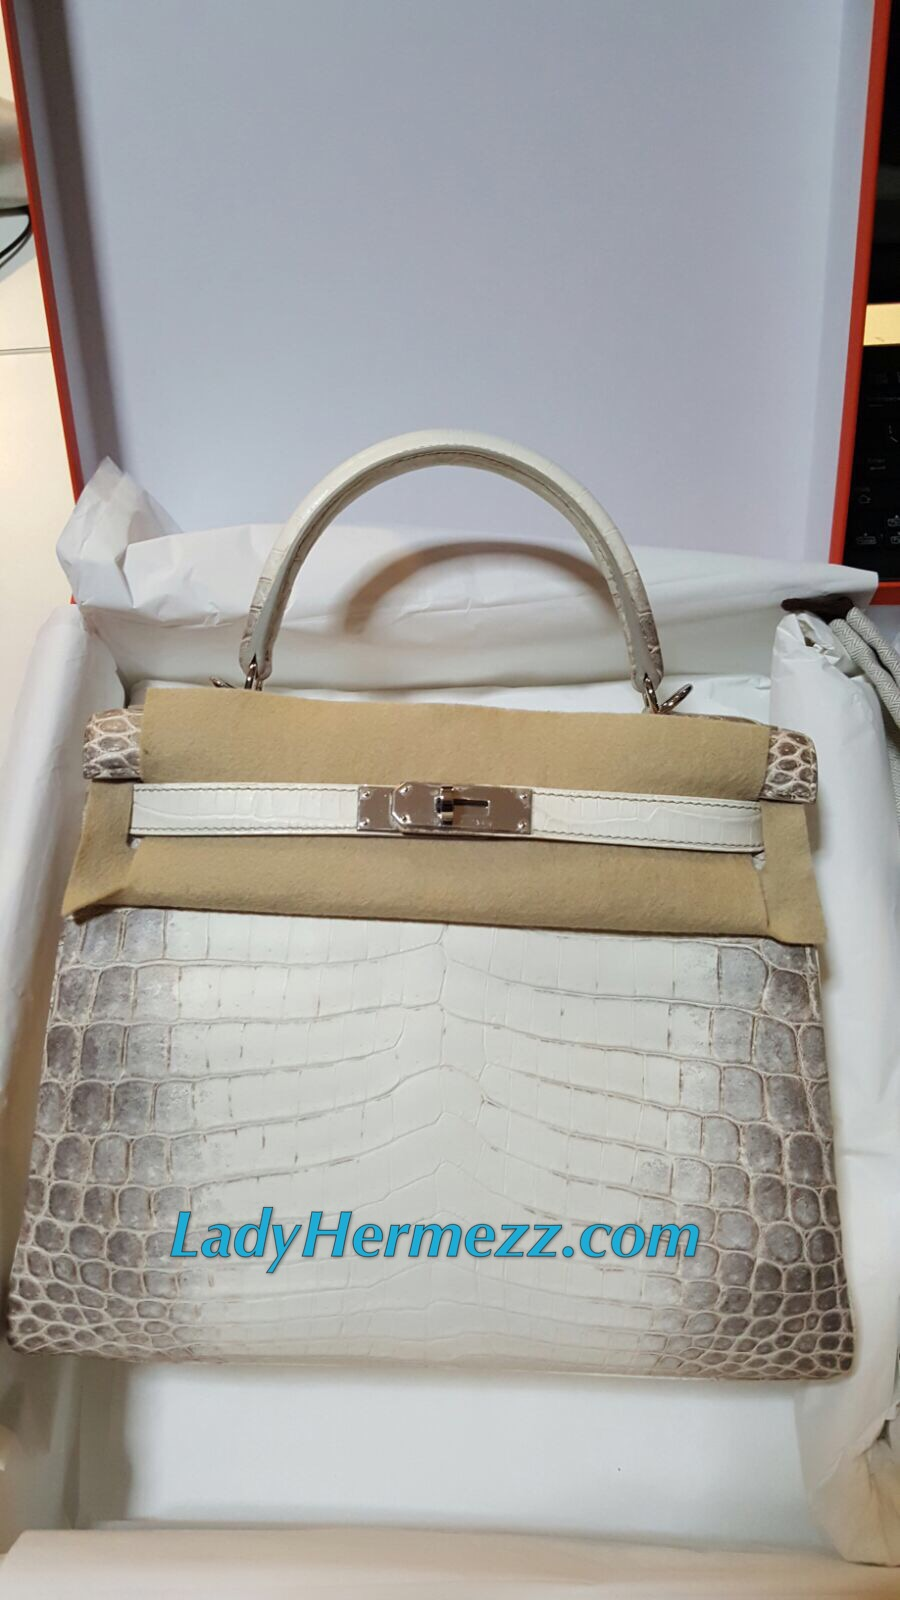 67ac9bad9ceb BNIB 28cm Hermes Kelly HIMALAYA WHITE matte nilo crocodile with Palladium  Hardware  T stamp 2016 Papers